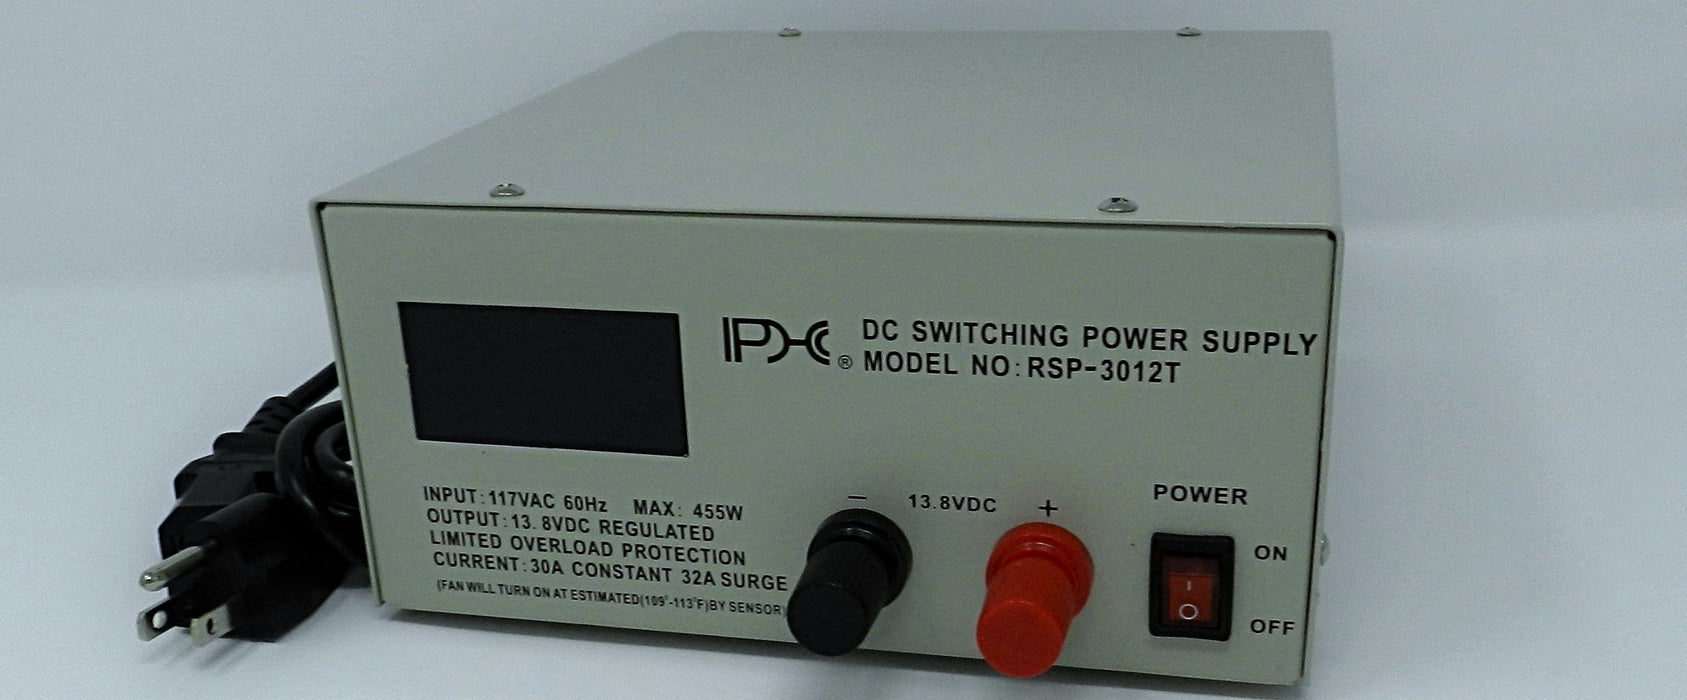 13.8VDC @ 30A DC Regulated Switching Power Supply; Part # RSP-3012T